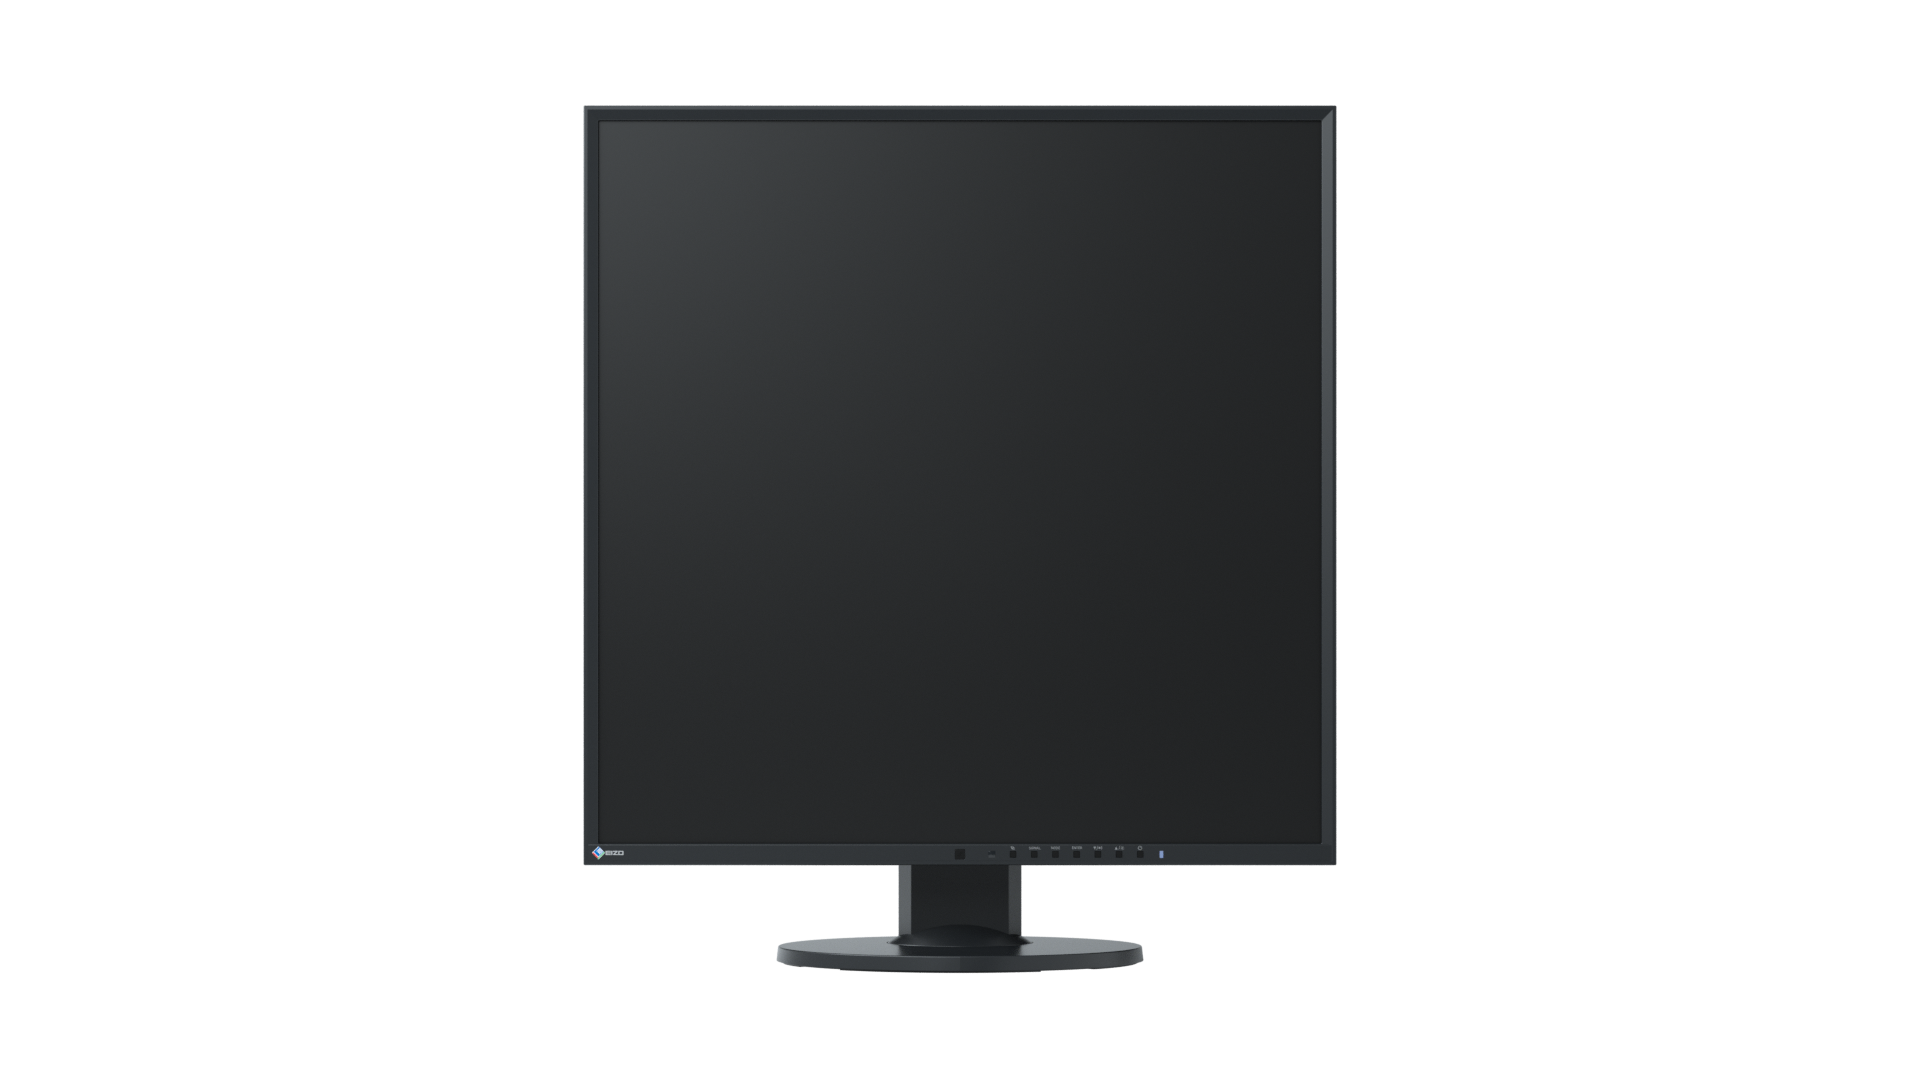 Монитор EIZO FlexScan EV2730Q, IPS, 26.5 inch, Clasic, Wide All Around, DVI-D, DisplayPort, Черен